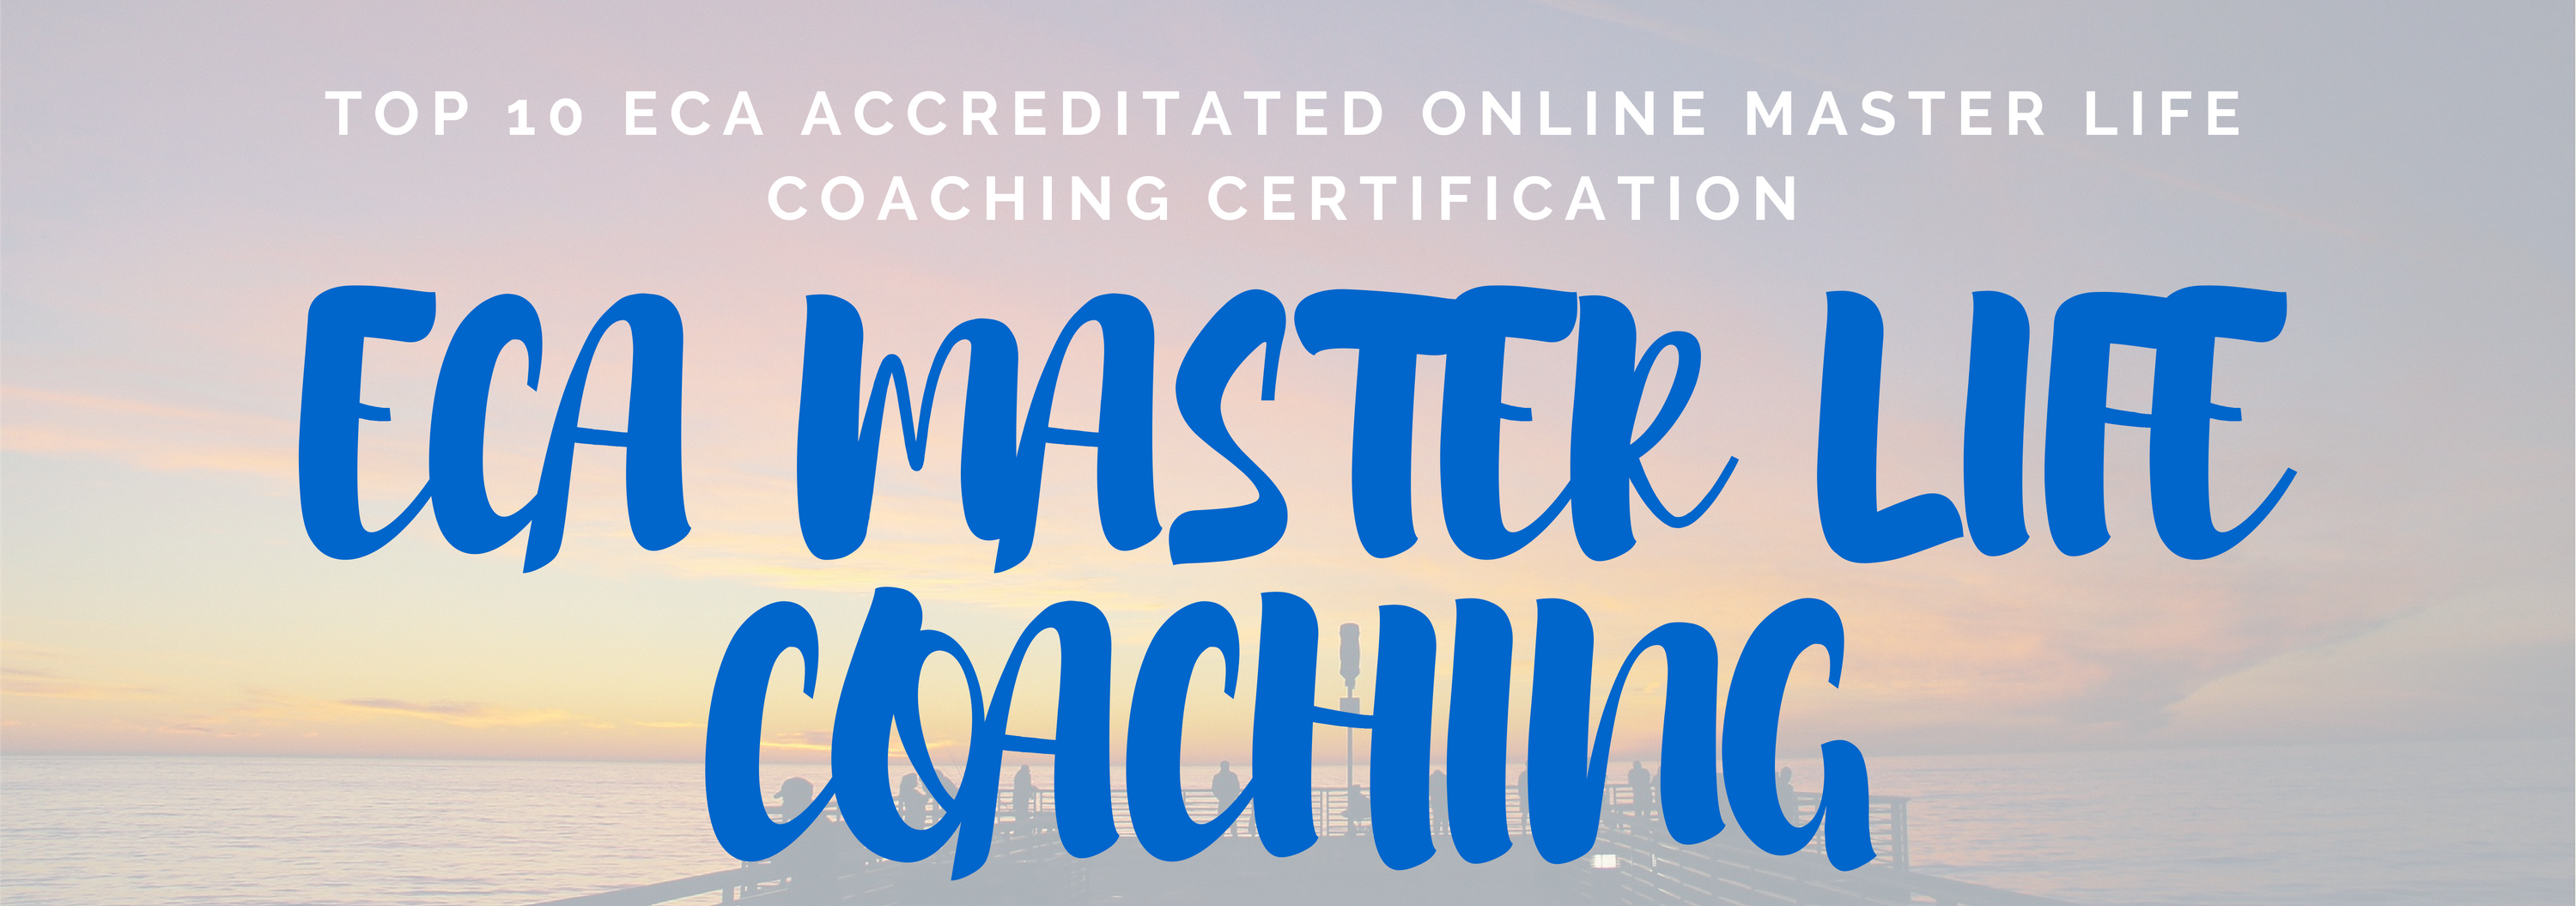 TOP 10 ECA ACCREDITATED ONLINE MASTER LIFE COACHING CERTIFICATI